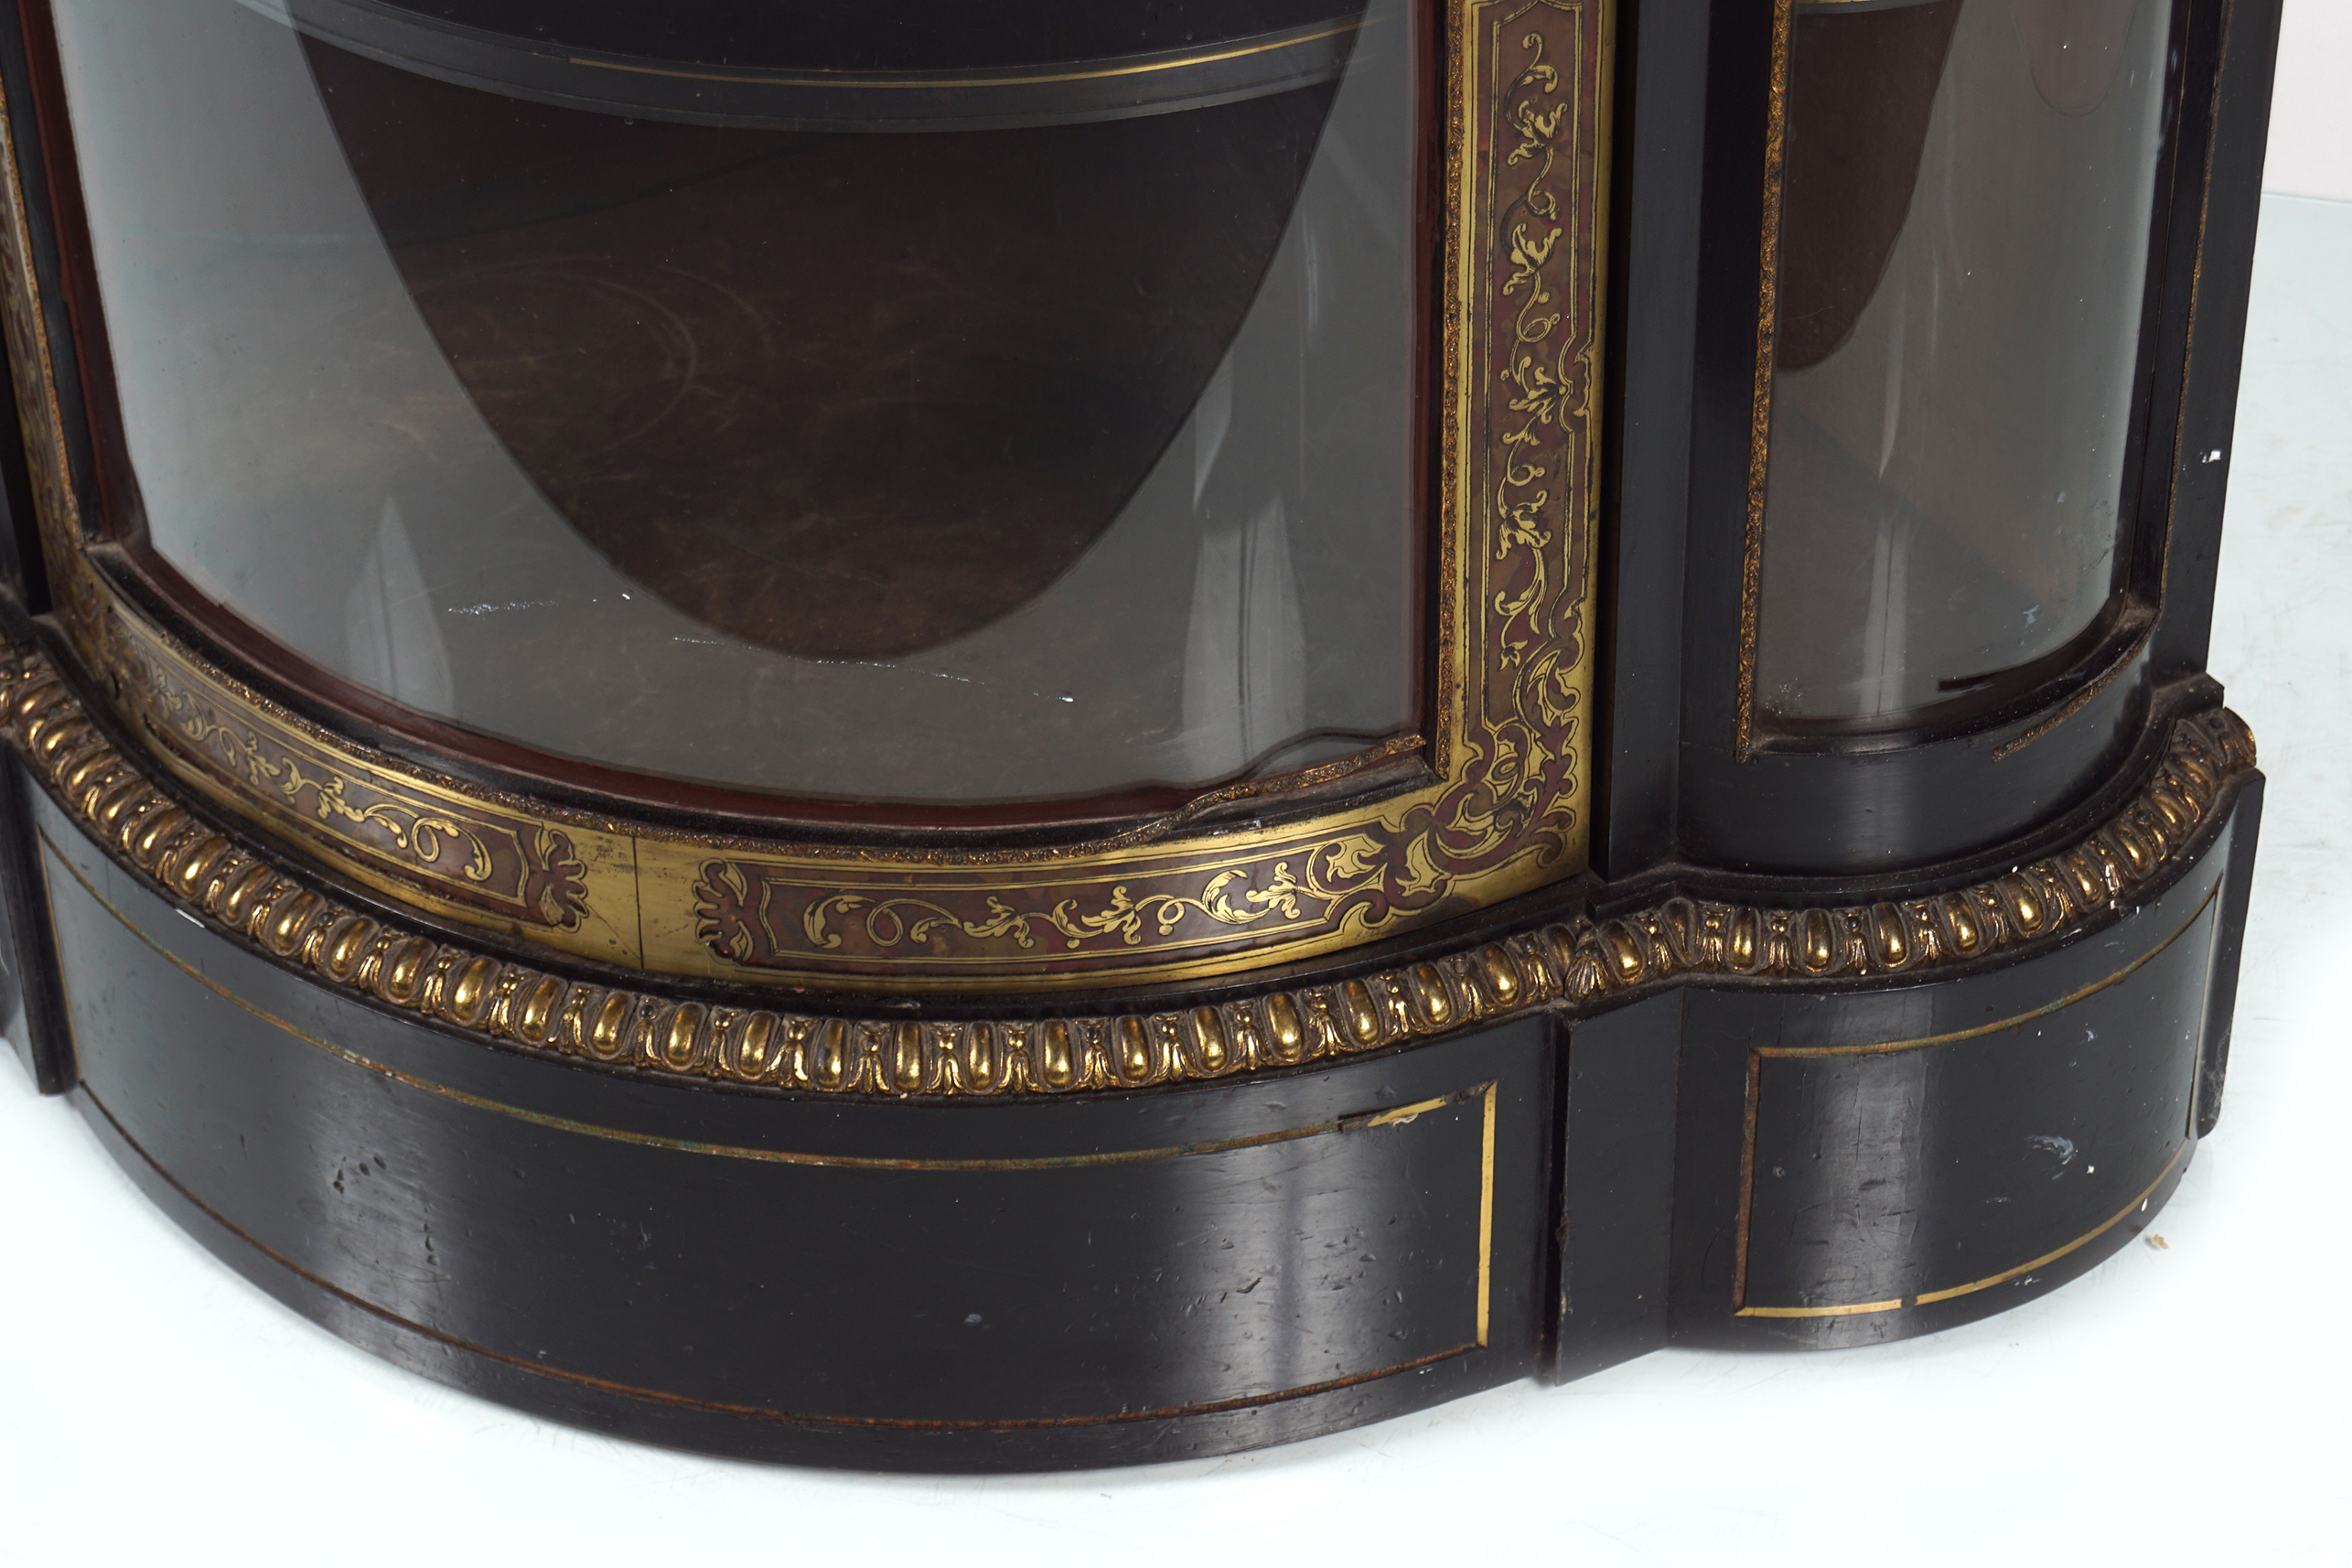 19TH-CENTURY BUHL CABINET - Image 4 of 4